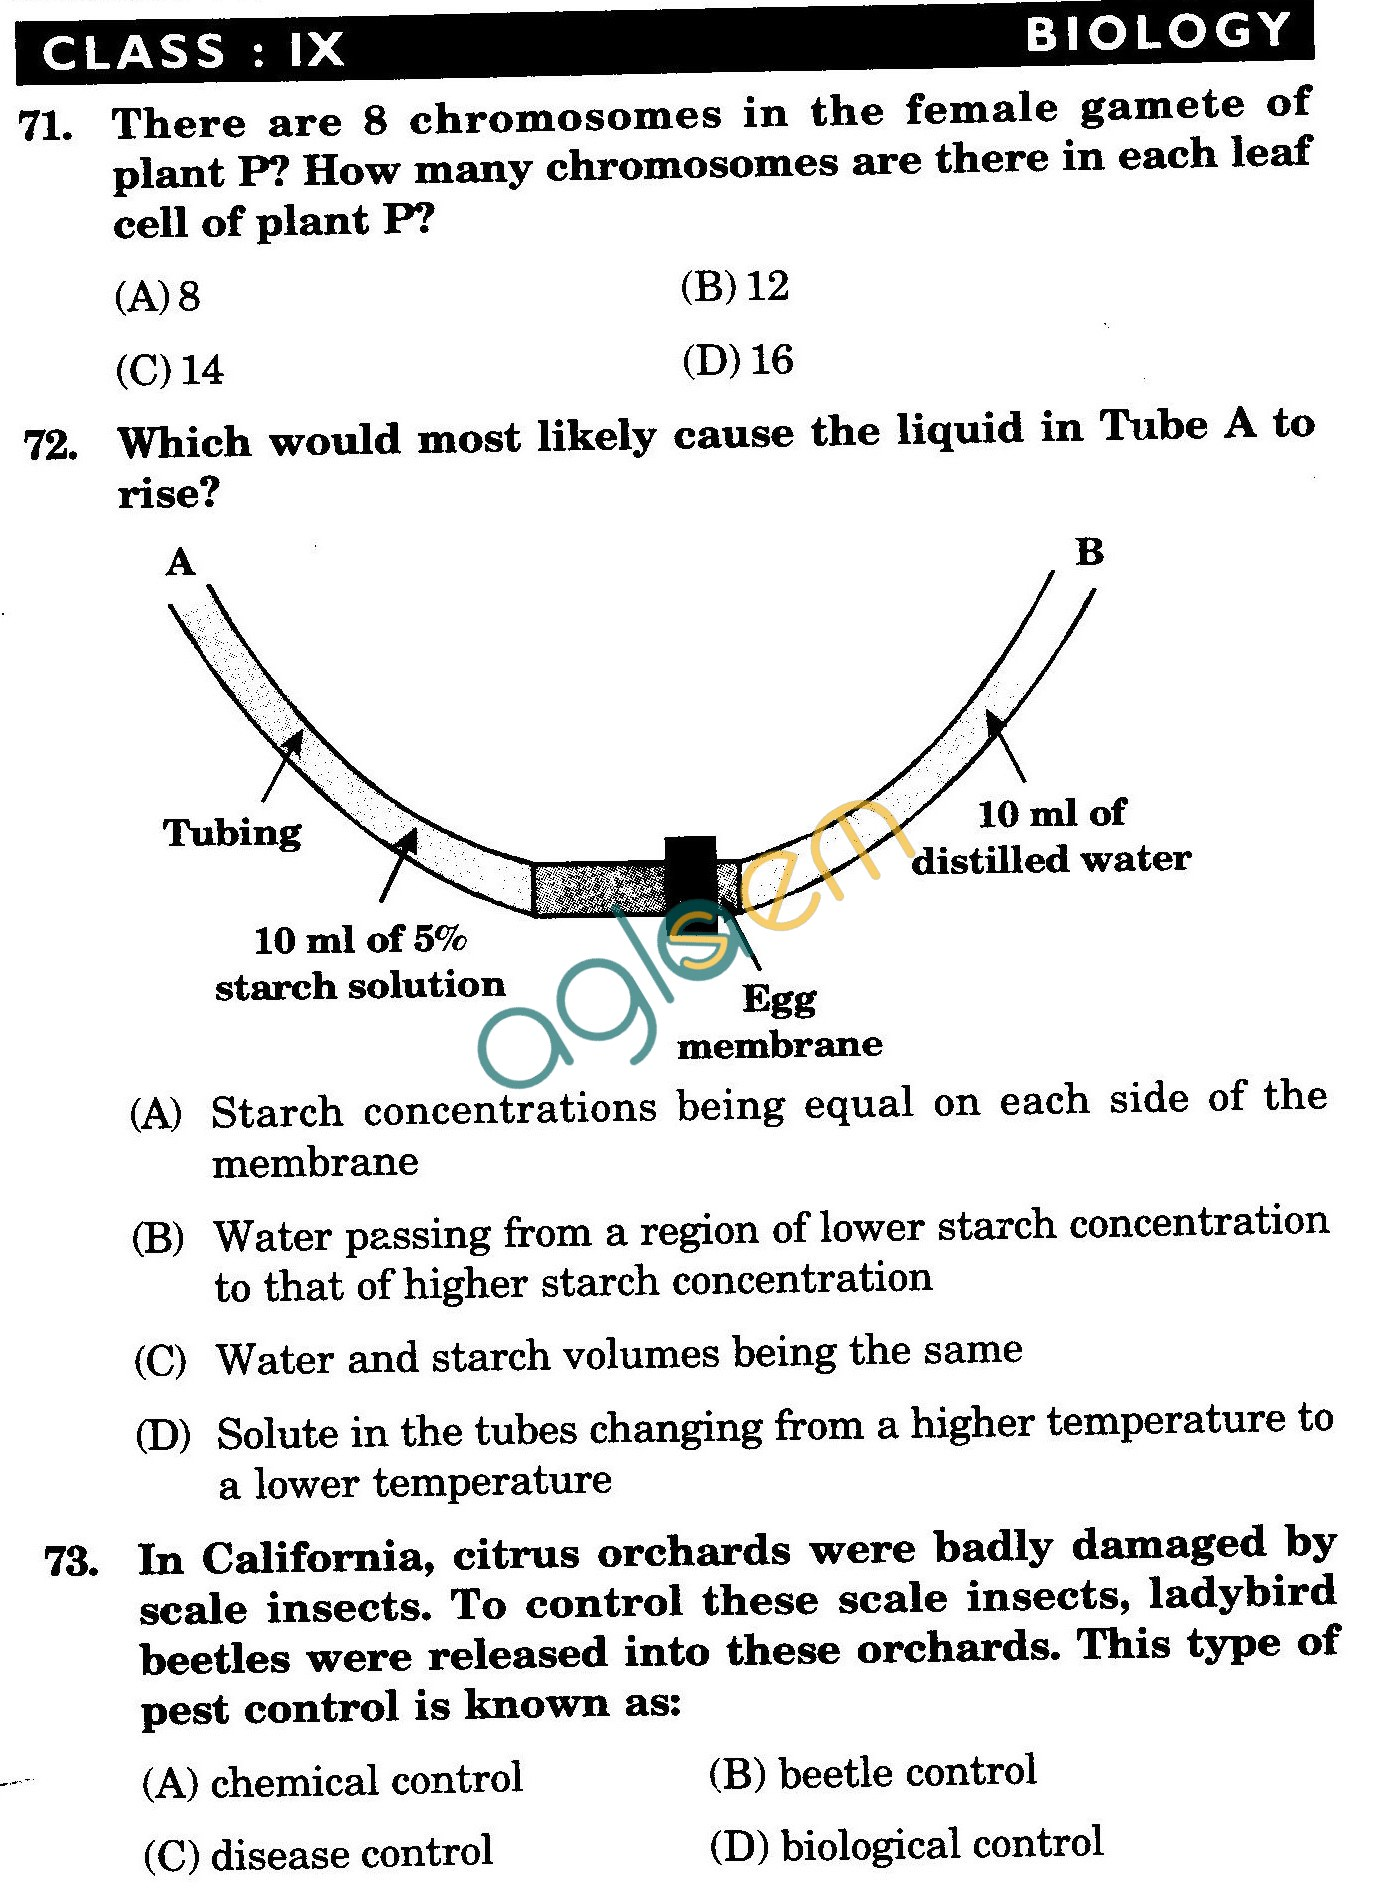 NSTSE 2009 Class IX Question Paper with Answers - Biology